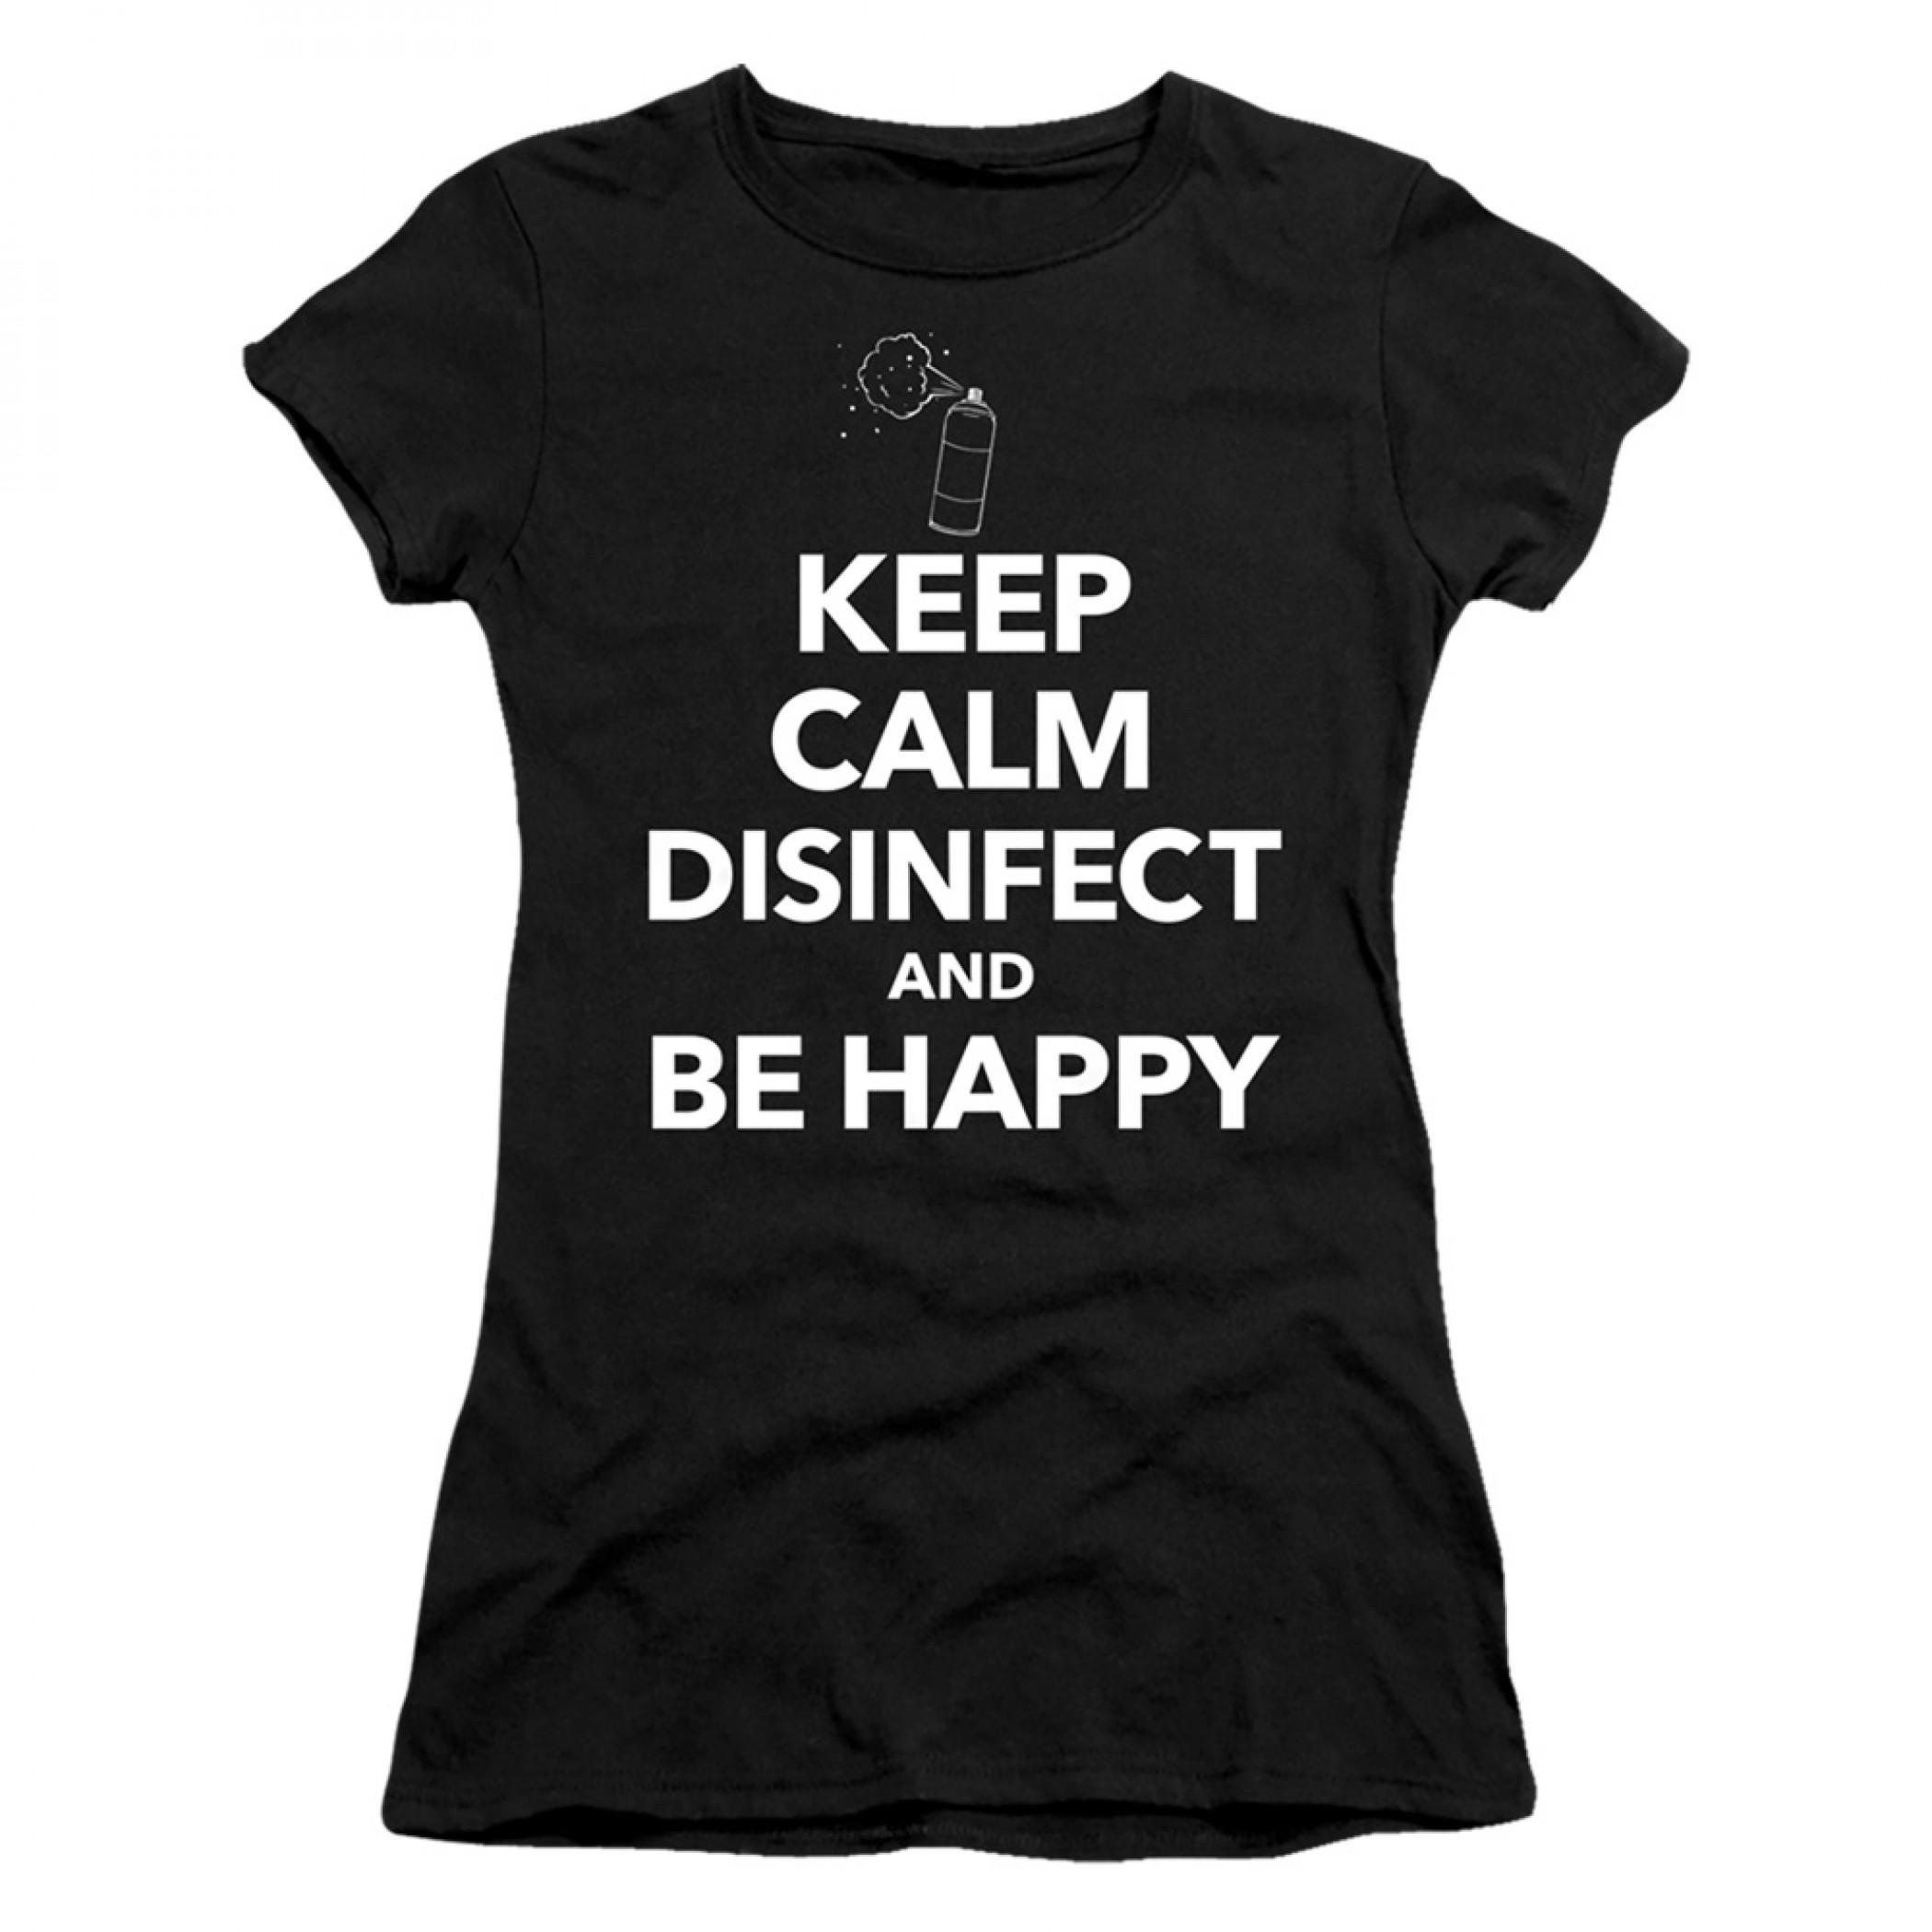 Keep Calm and Disinfect Social Distancing Women's T-Shirt